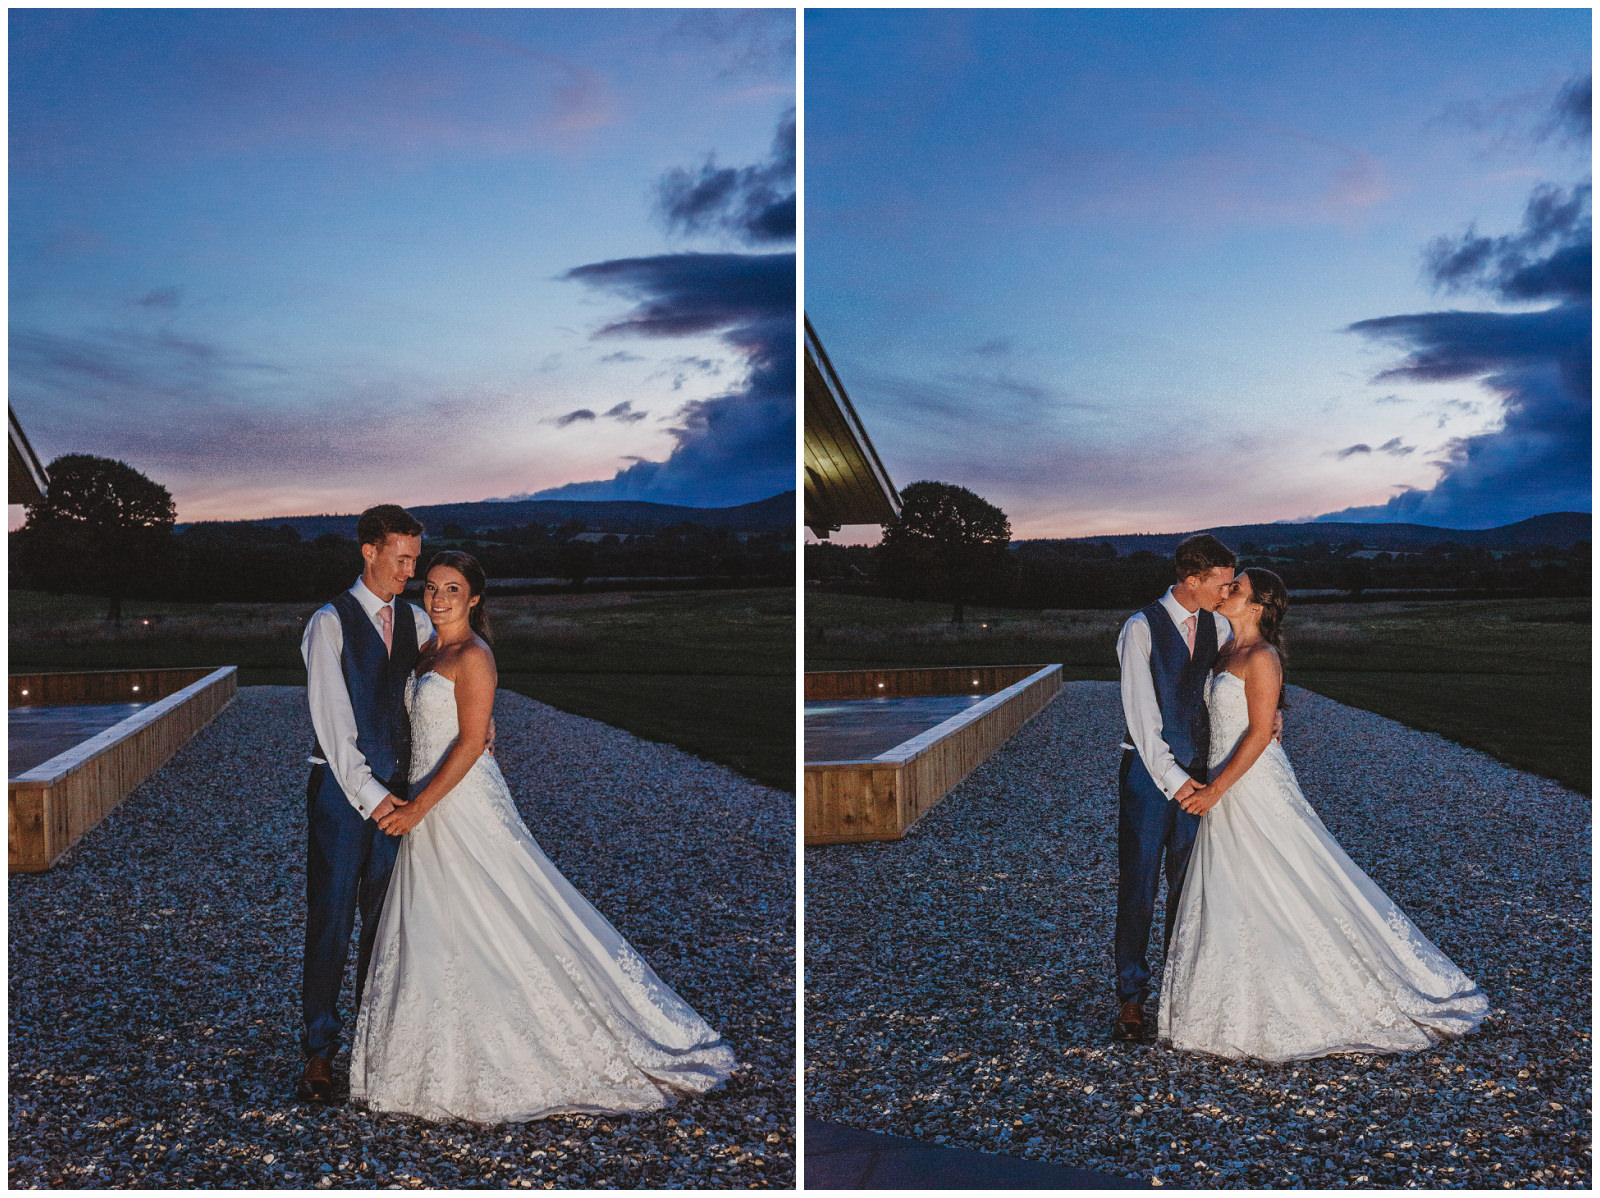 dusk portraits of bride and groom